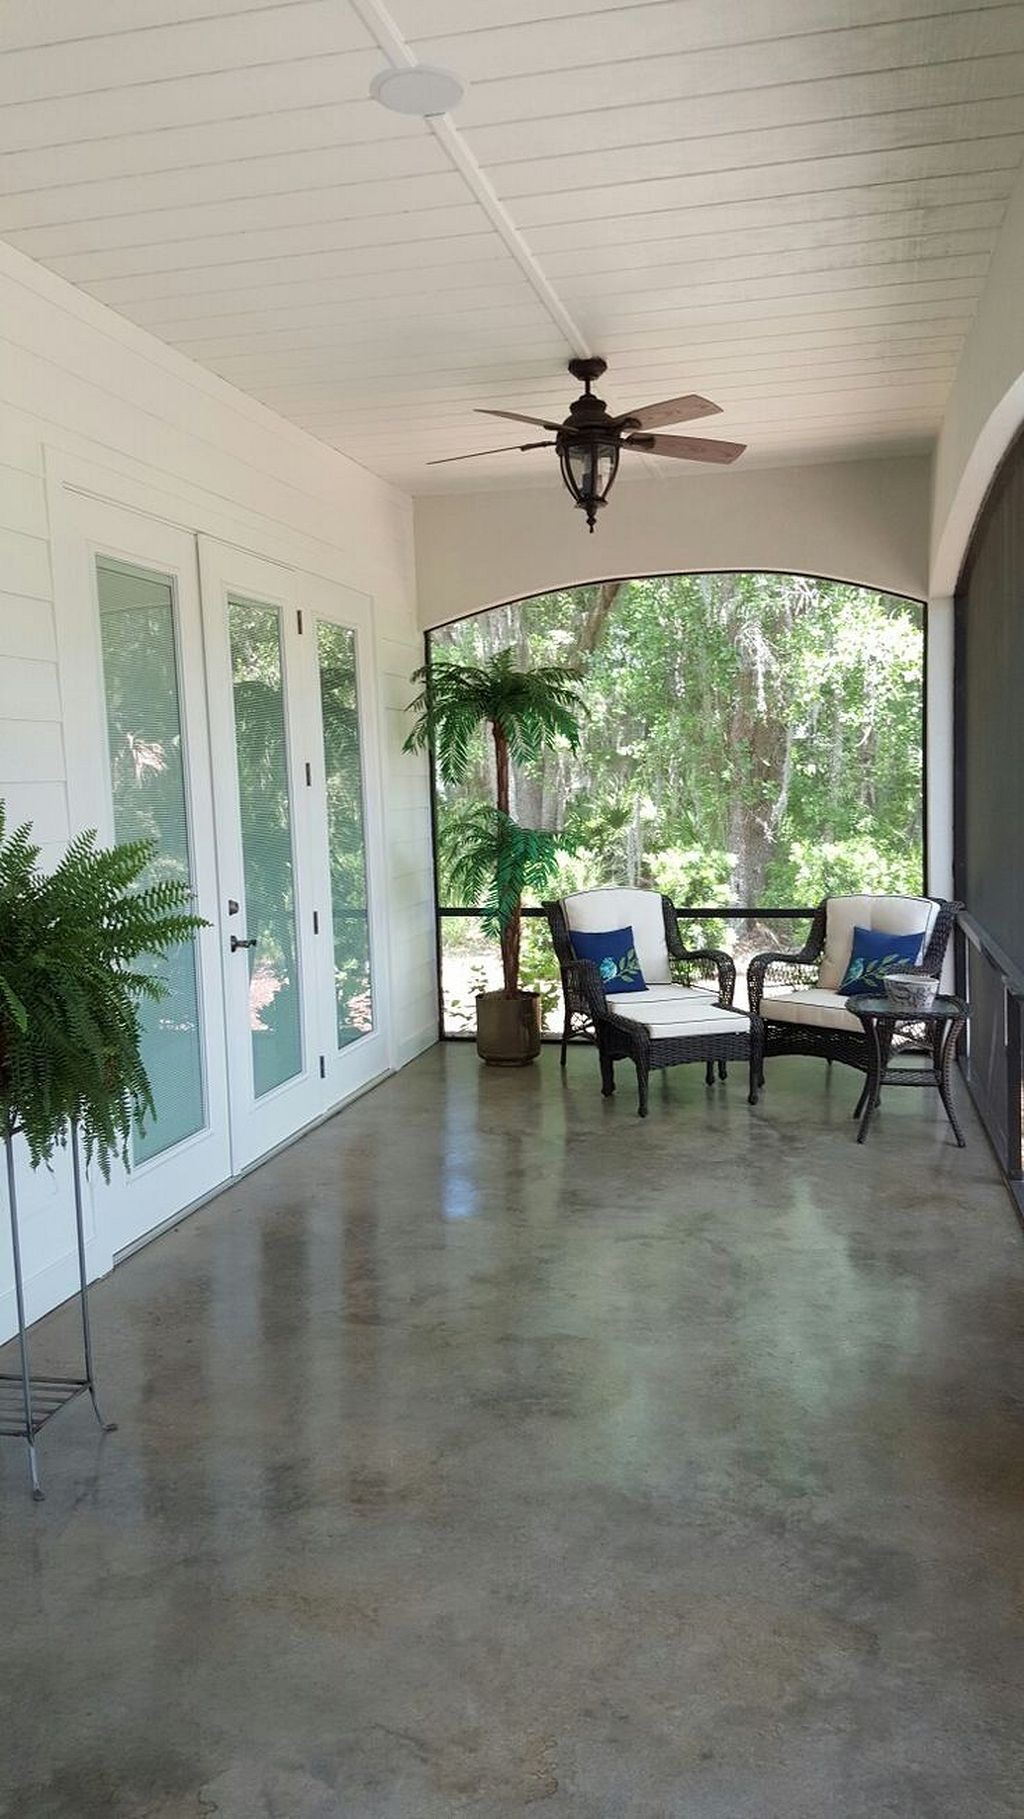 32 Awesome Back Patio Ideas (With images)   Concrete stain ... on Concrete Back Porch Ideas id=42768